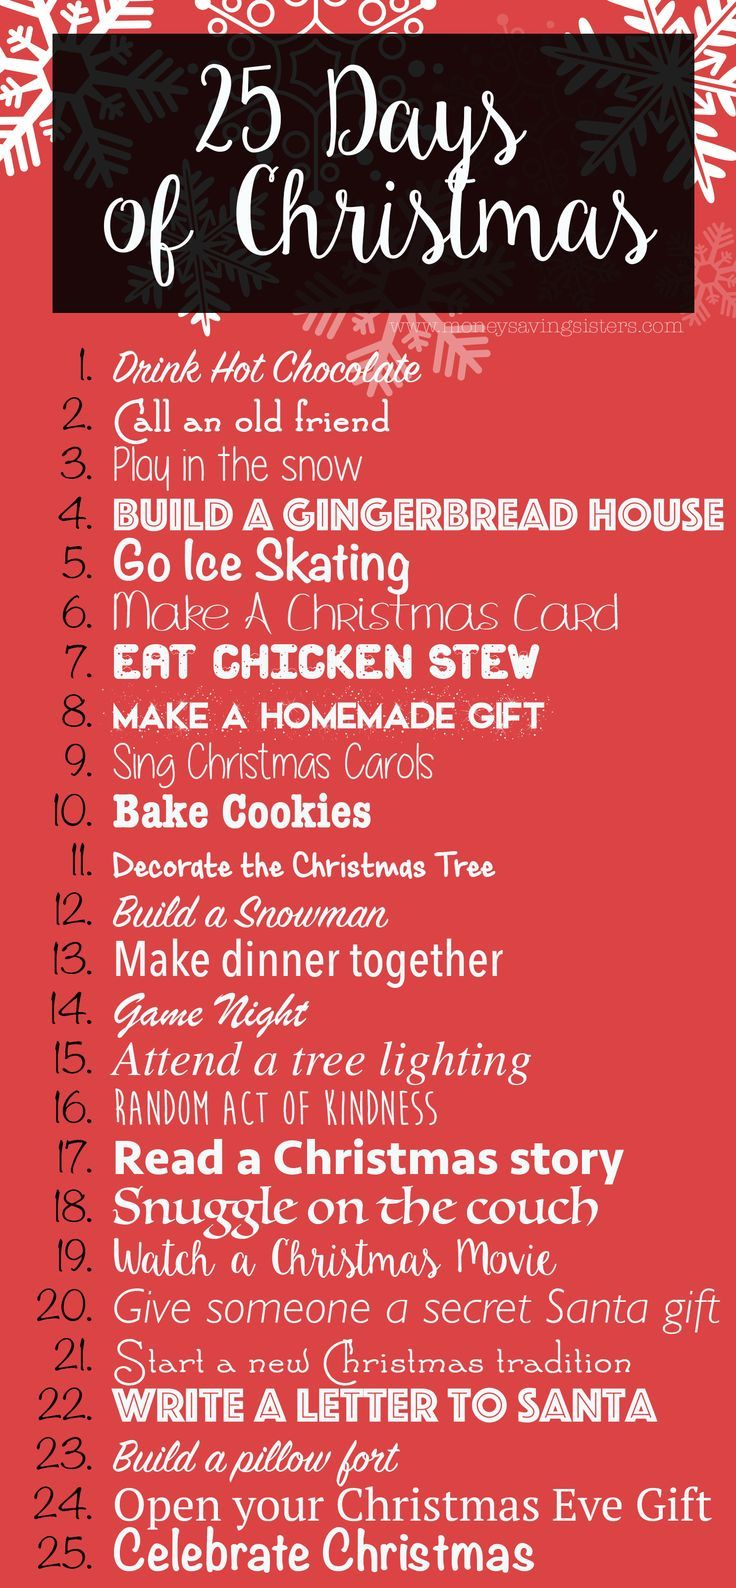 This is a lovely list for getting ready for Christmas - do you do any of these or have your own?